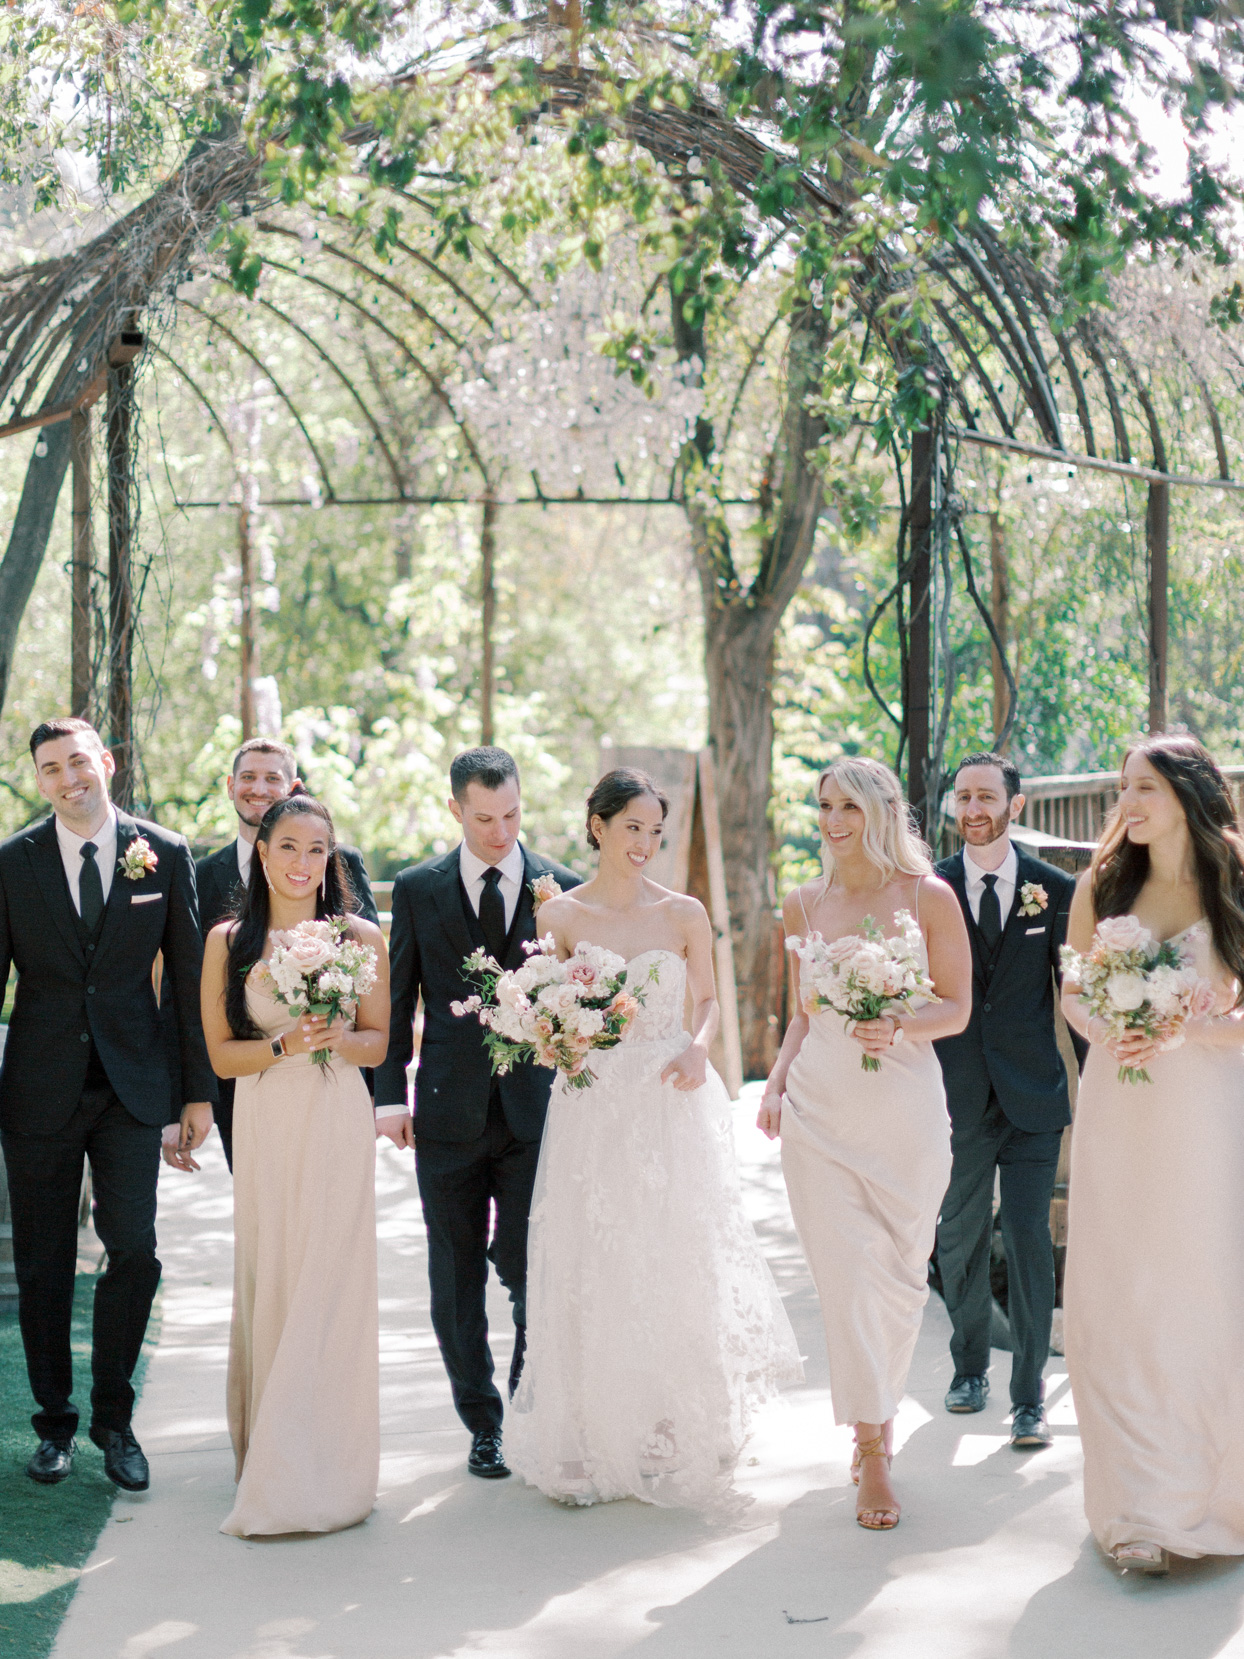 wedding party in suits and beige colored dresses